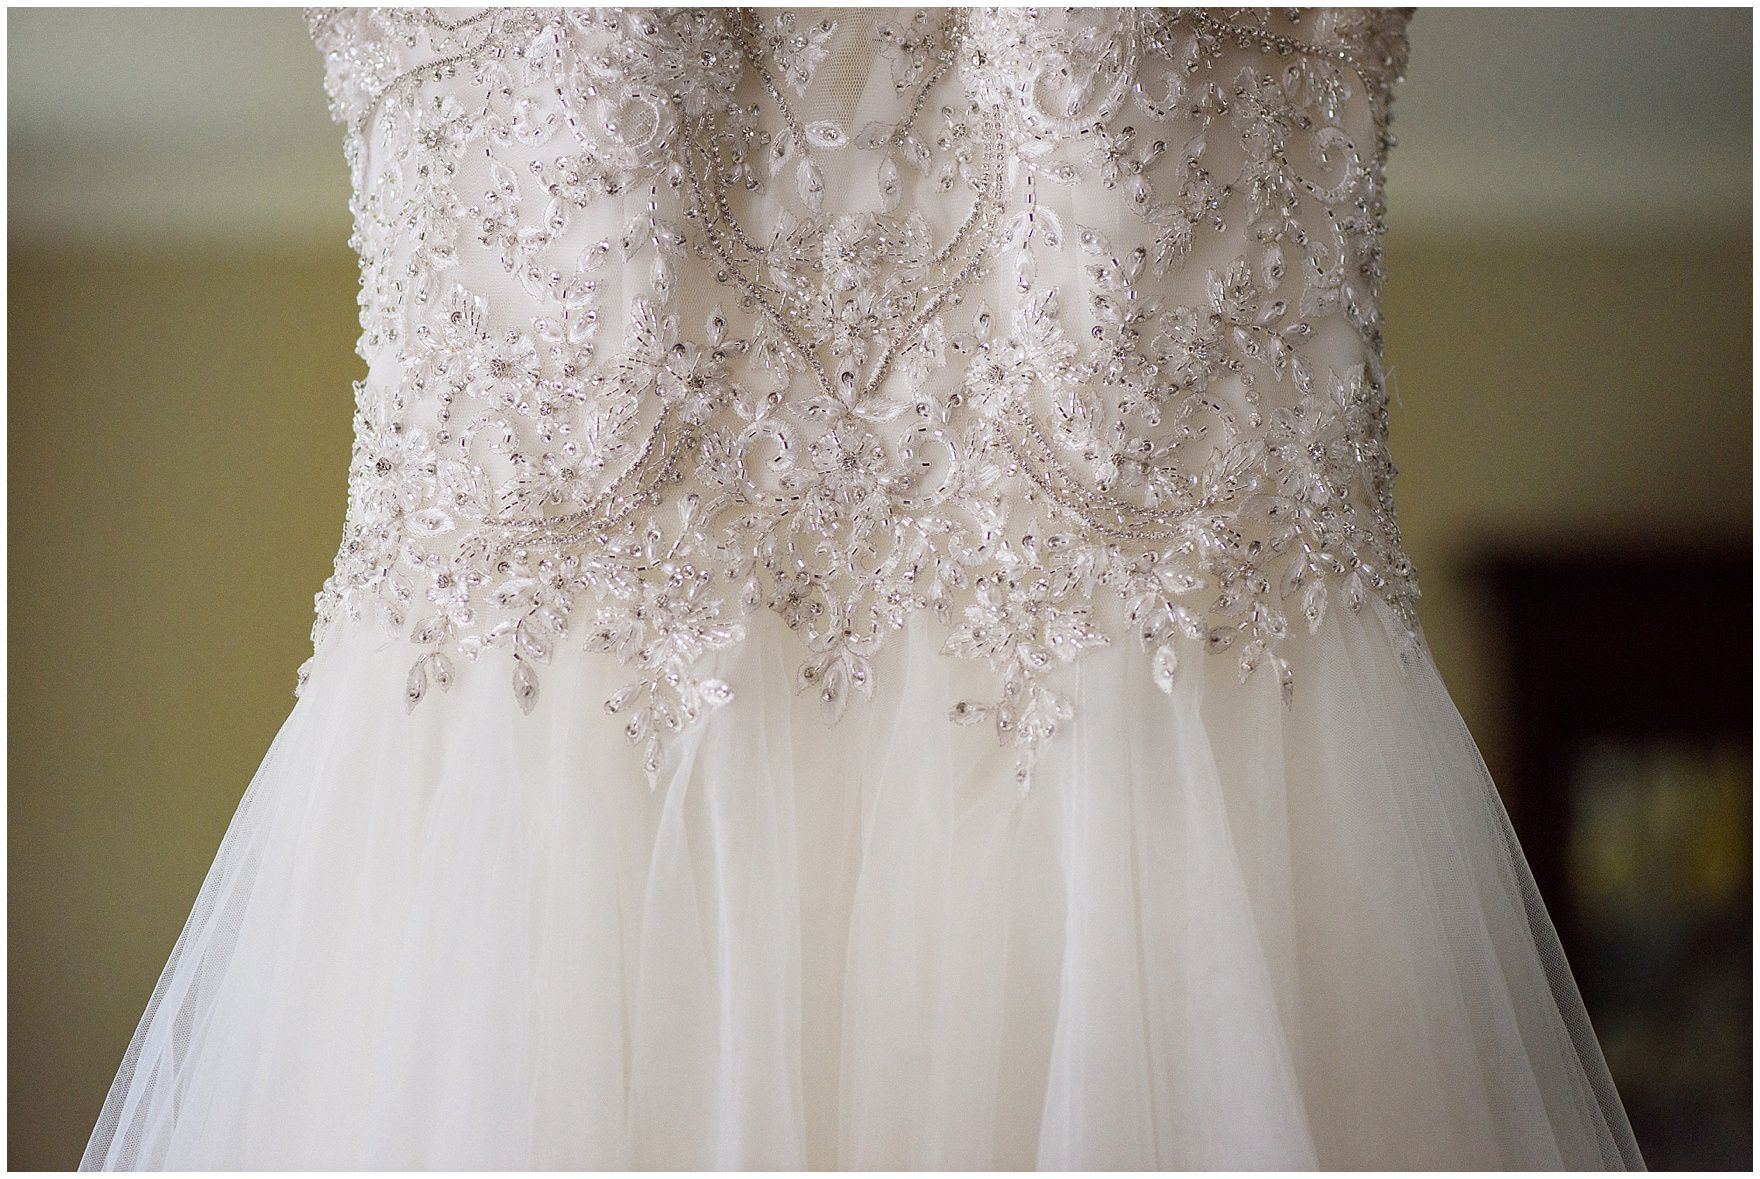 Details of a beaded wedding gown before a Biltmore Country Club Barrington wedding.